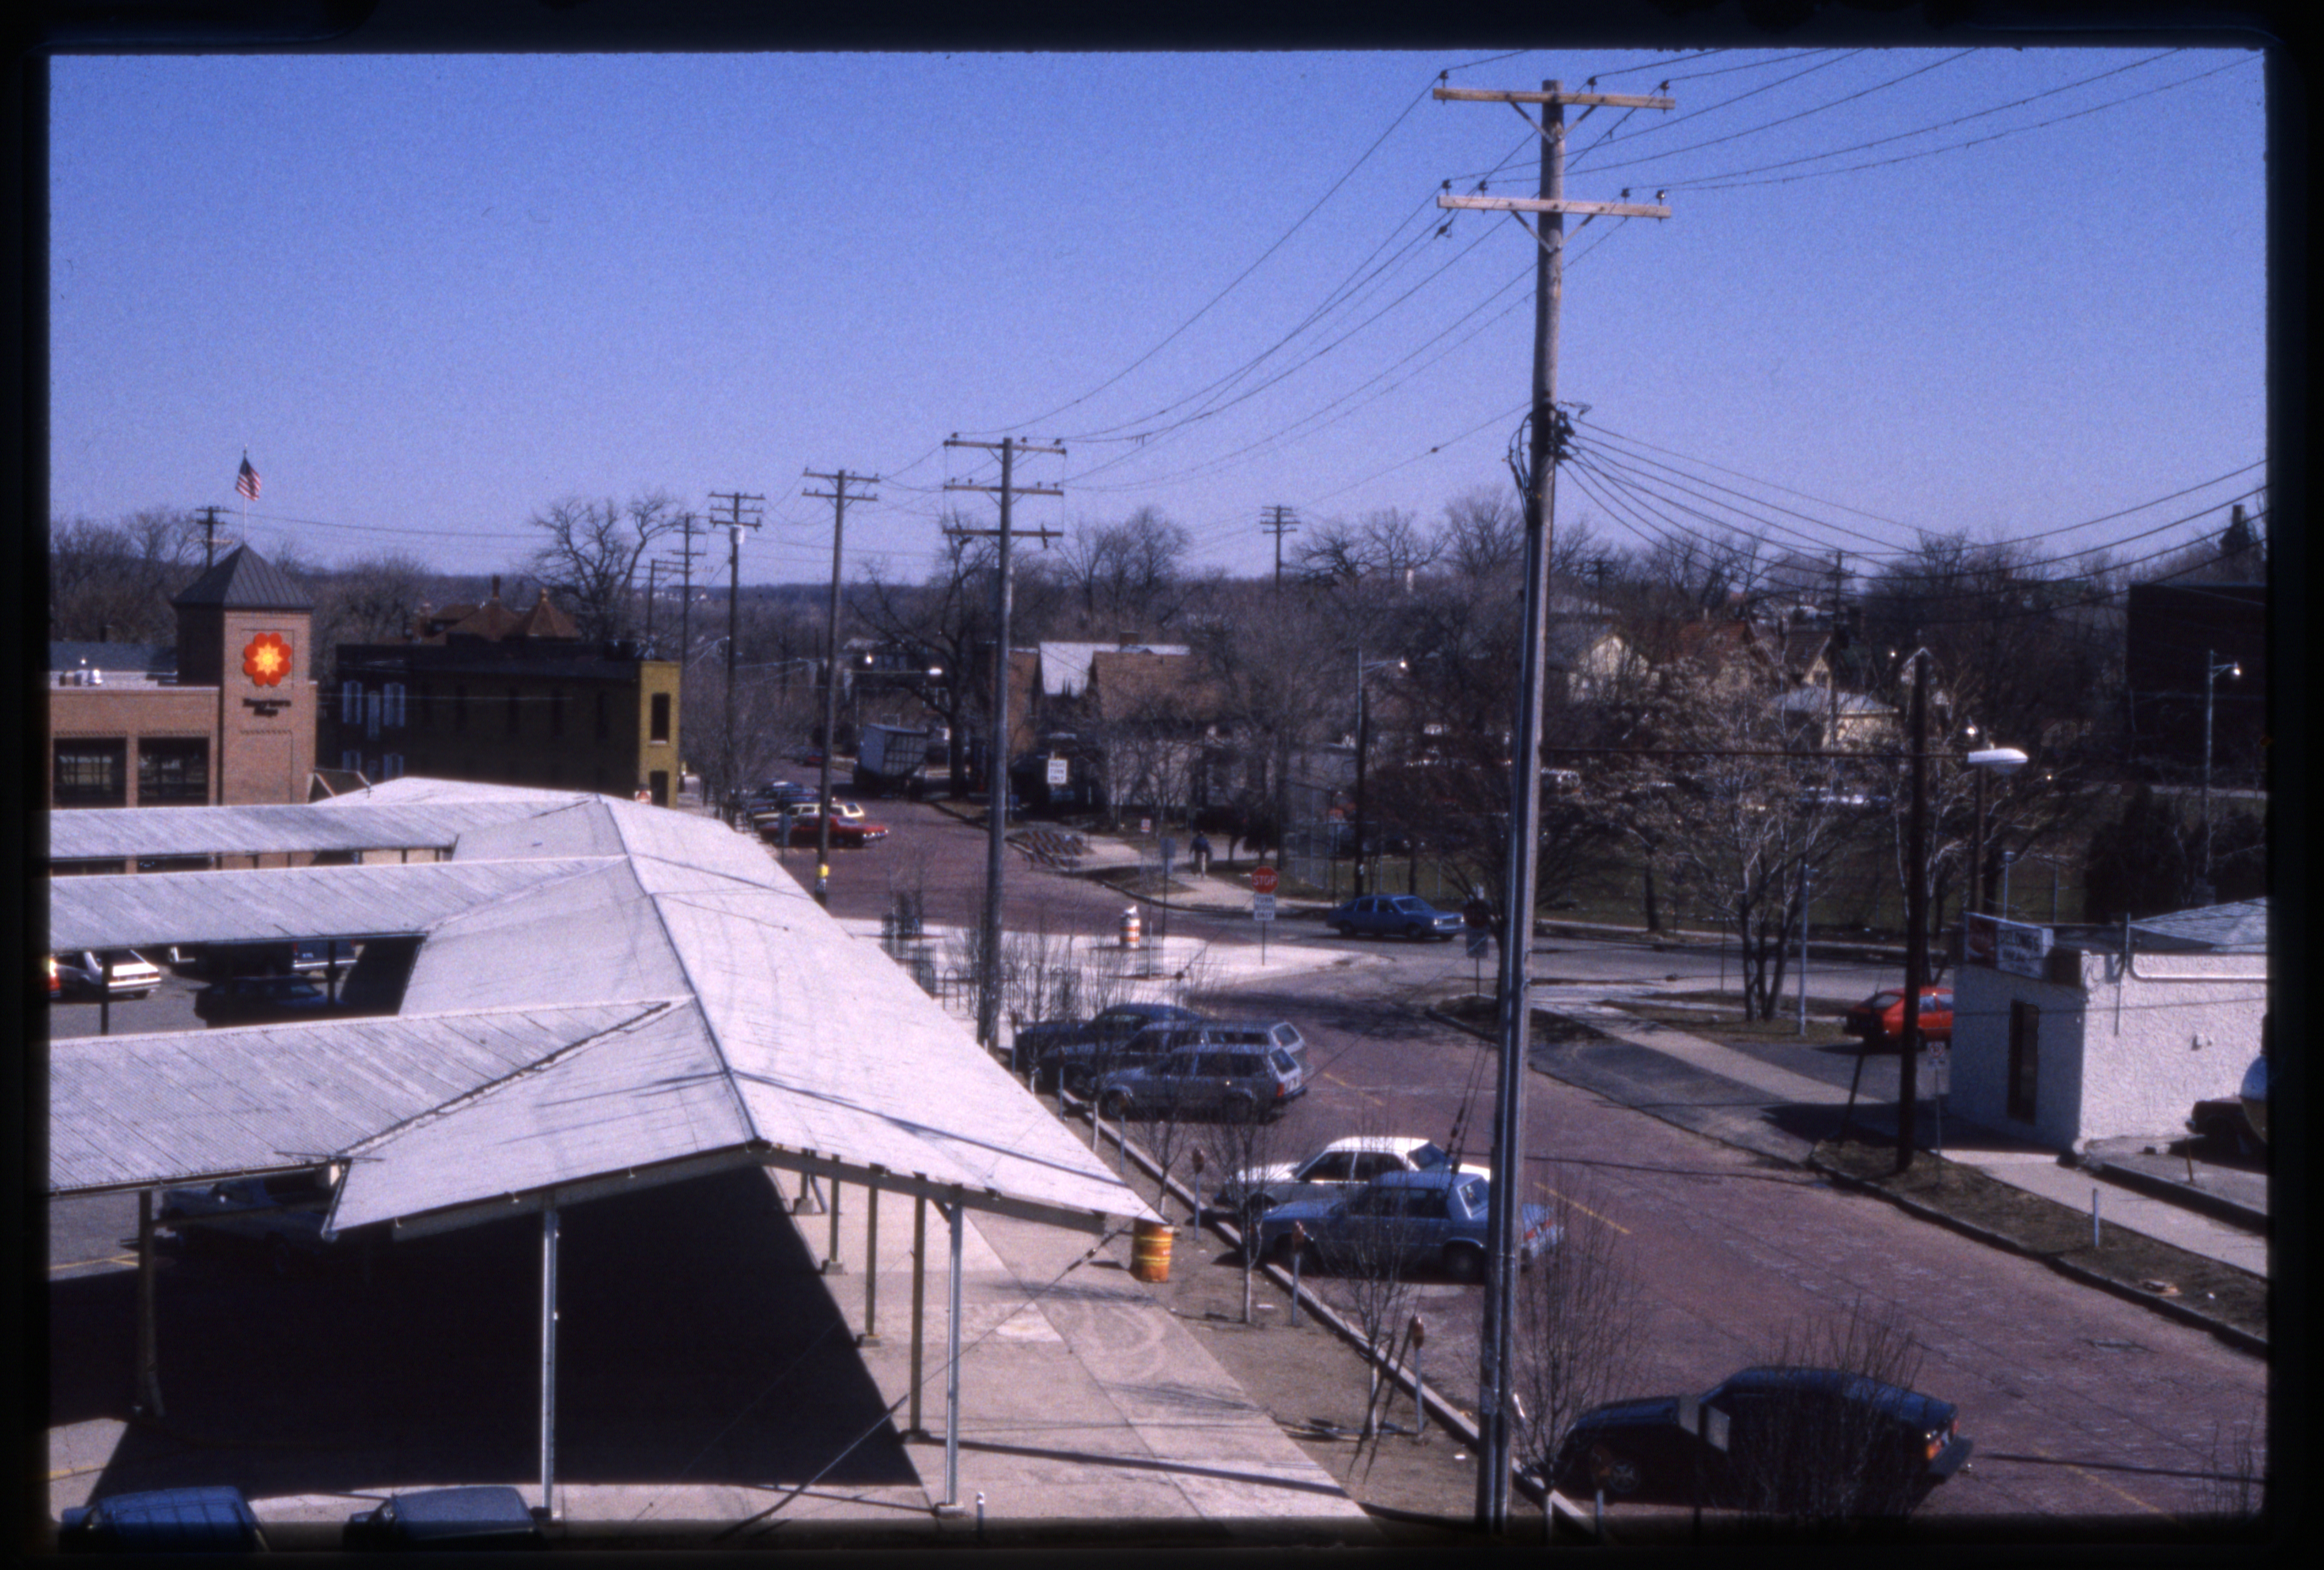 Looking northeast up Detroit St, 1985 image